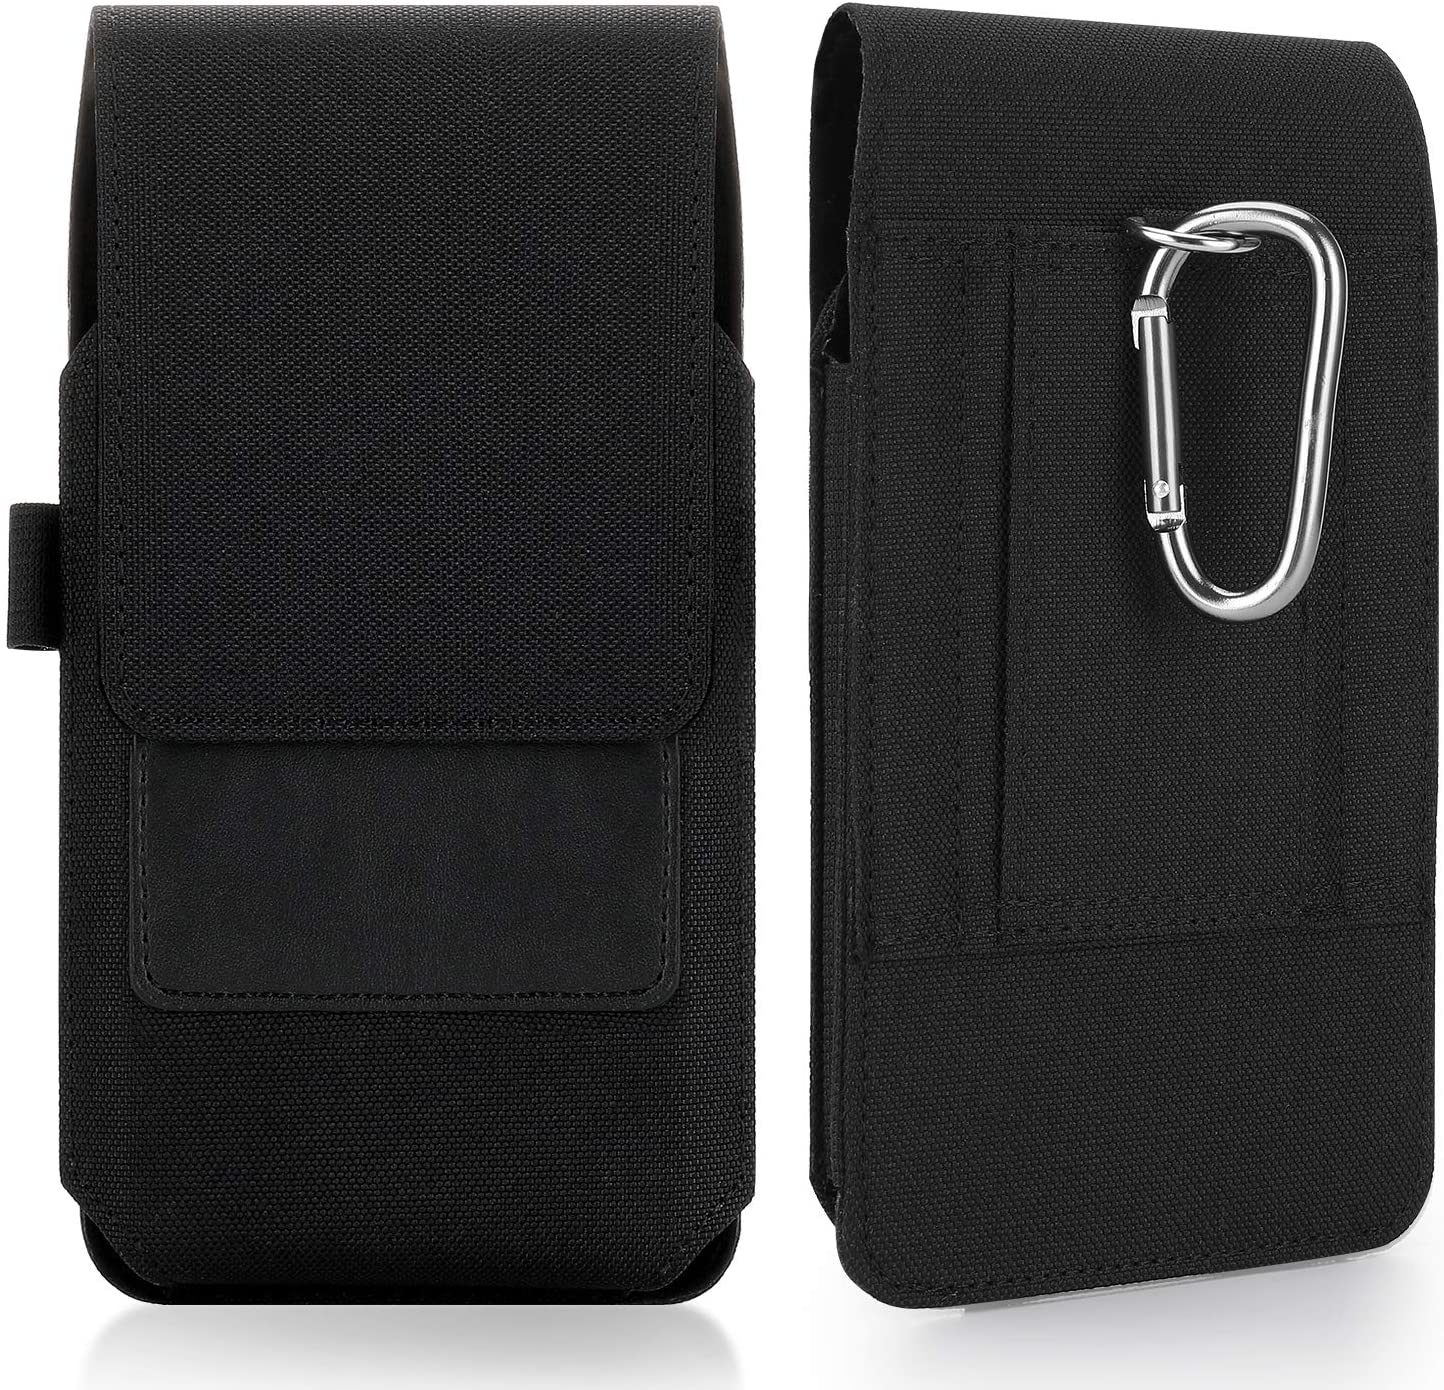 Mopaclle Galaxy S20 FE 5G Holster Case, Nylon Galaxy S20 + Plus Belt Case with Clip/Loops Carrying Pouch Holder for Samsung Galaxy Note 8 9 10/ Note 20 Ultra (Fit w/Thin Case on) Black